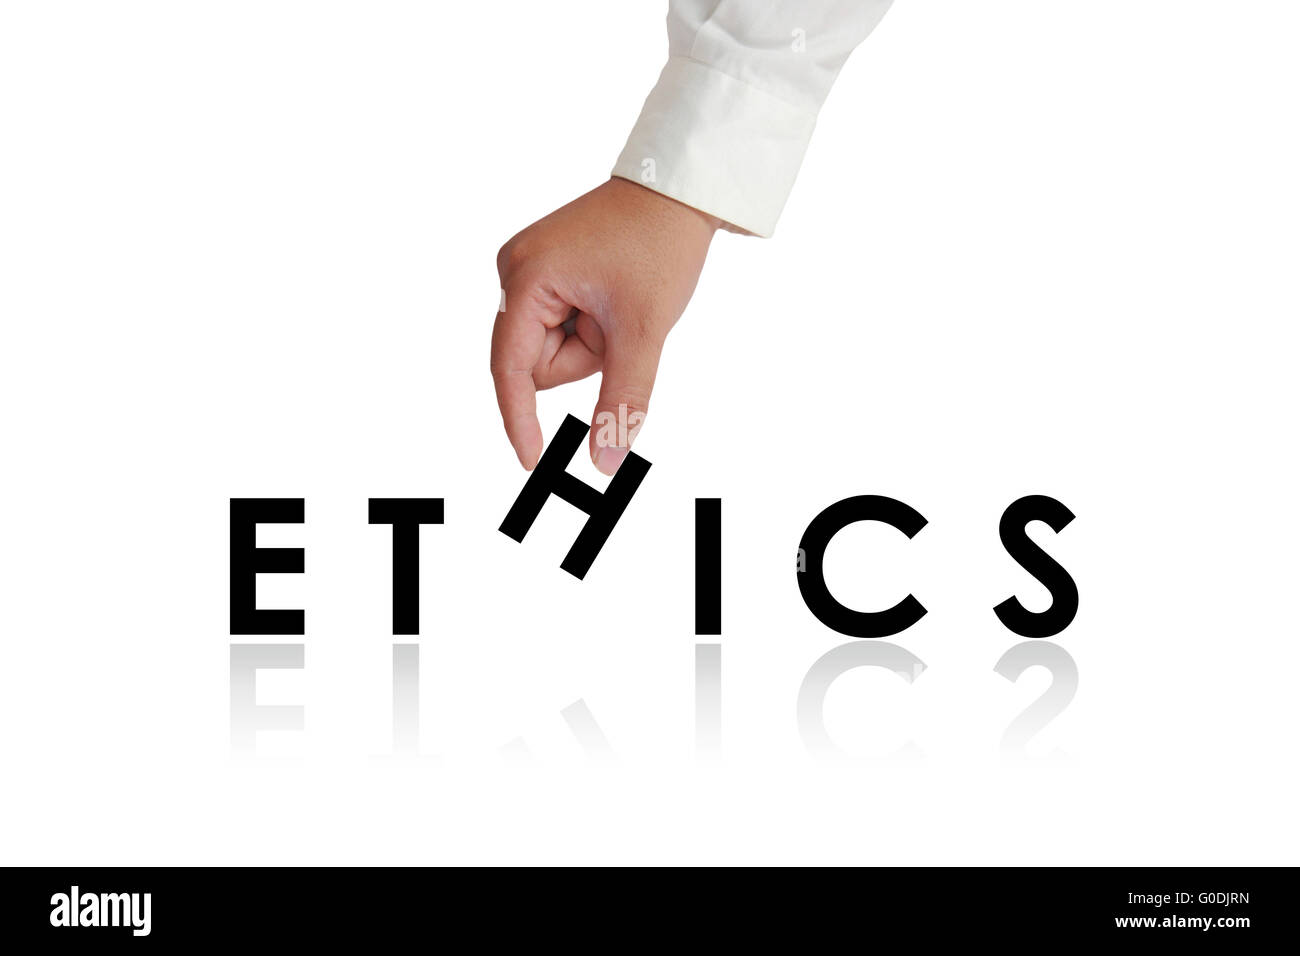 Gesture of hand picking up letters and making Ethics word isolated on white - Stock Image